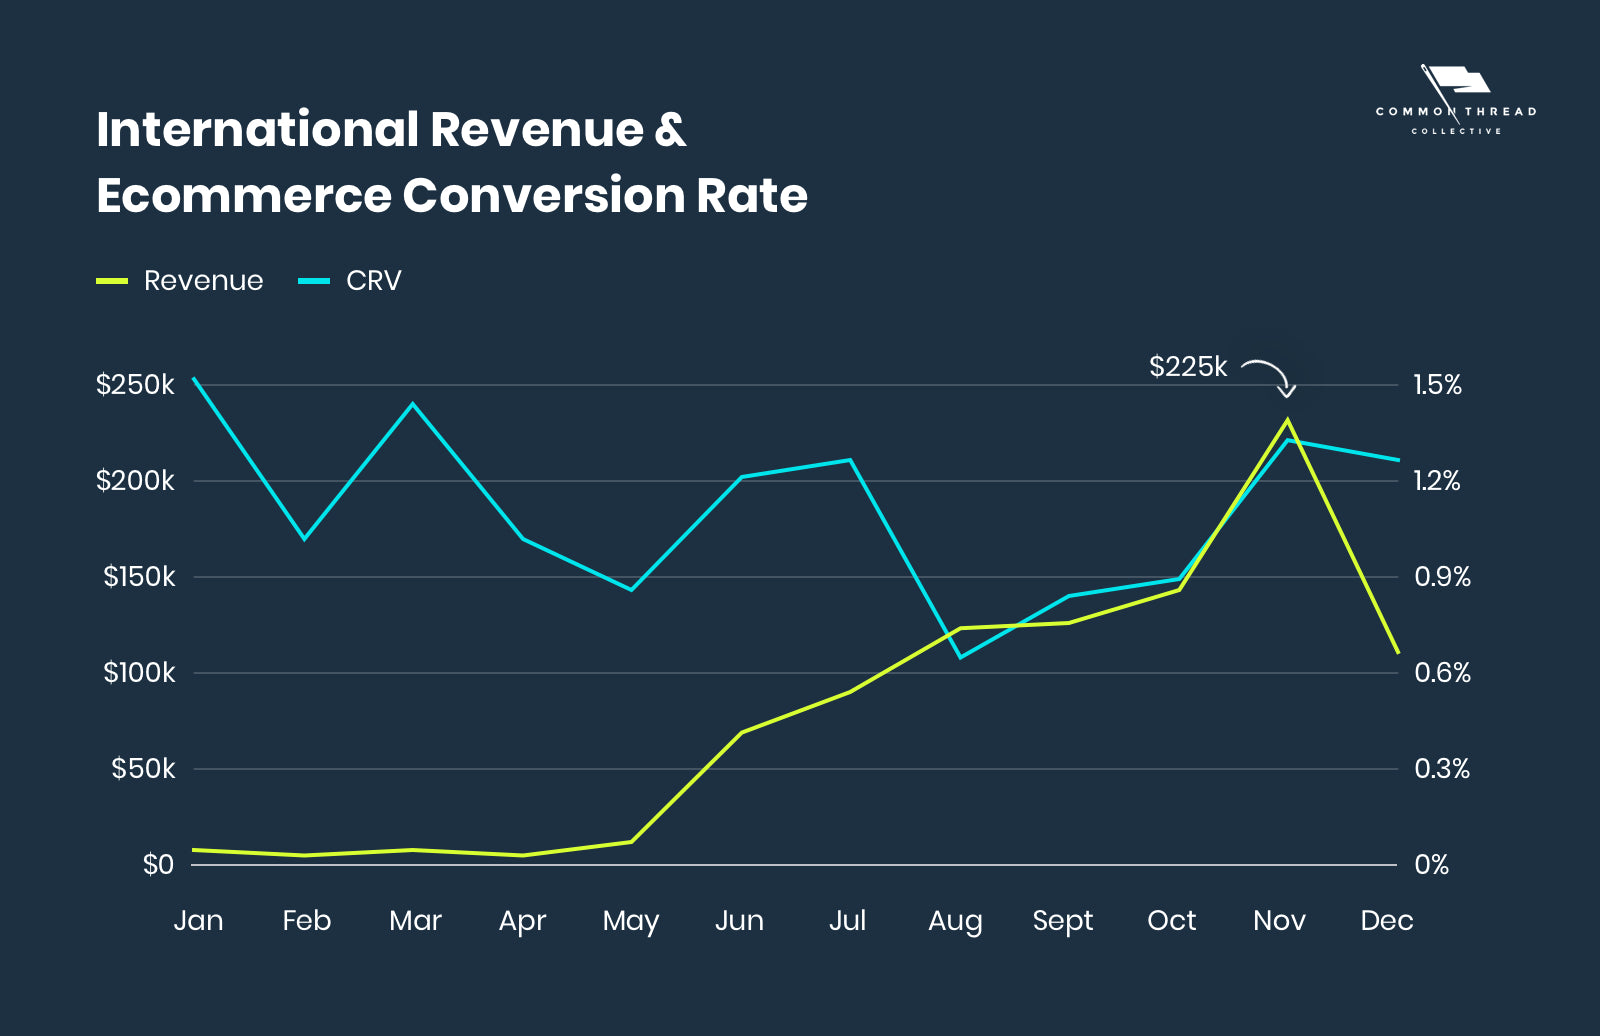 International Revenue & Ecommerce Conversion Rate